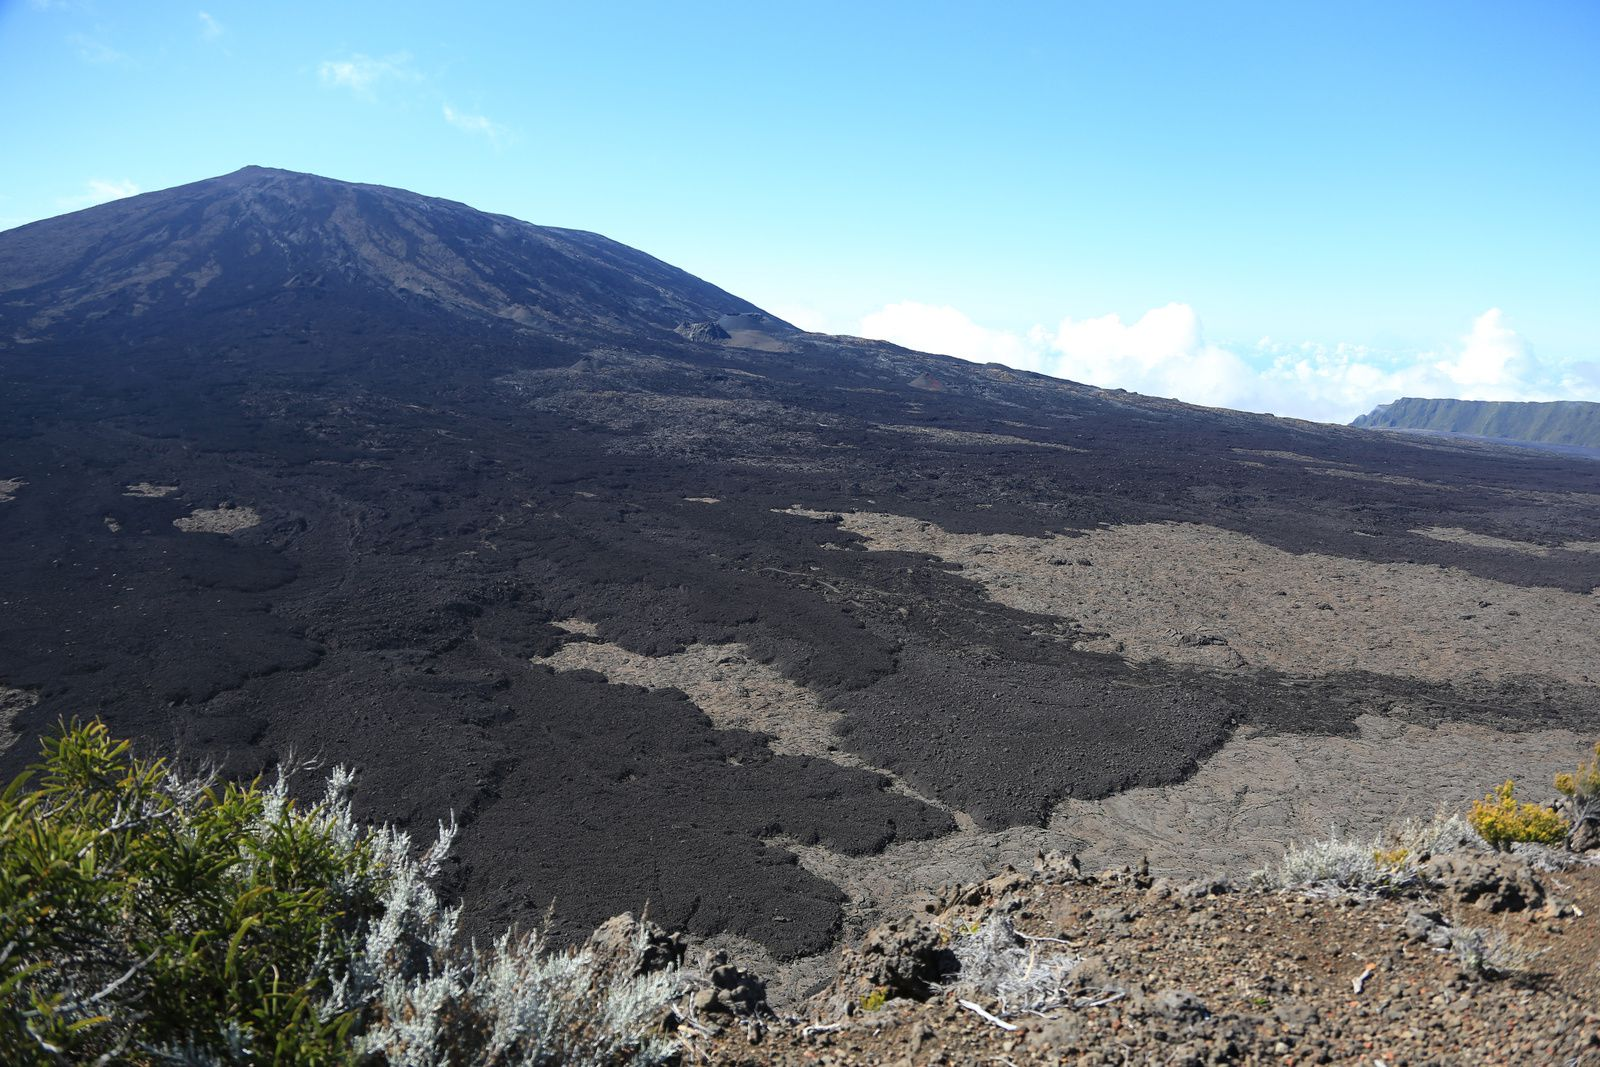 The Piton de la Fournaise, seen from the Piton de Bert trail - photo © Bernard Duyck / June 2017